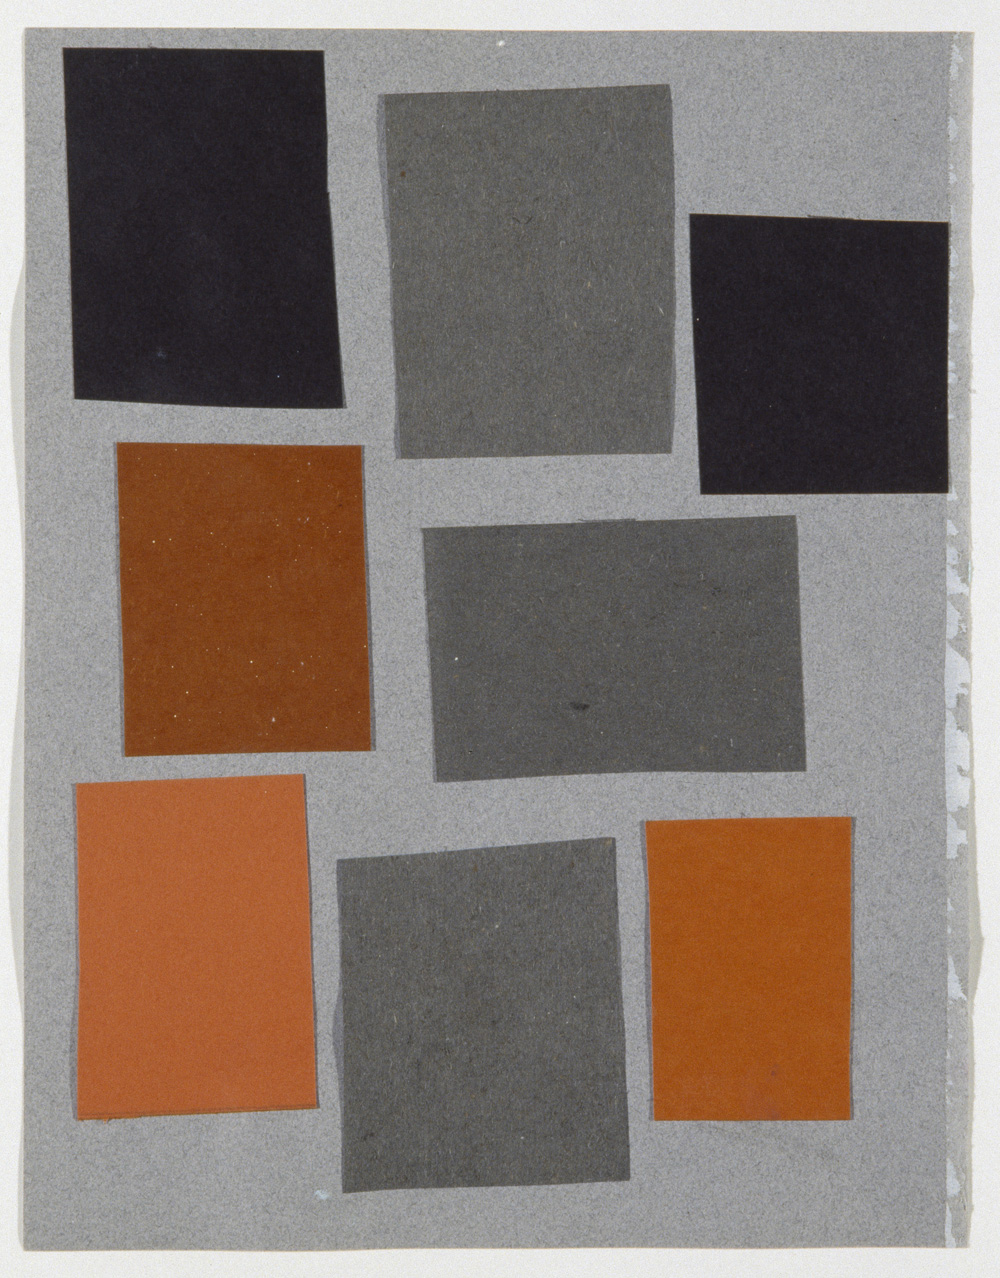 Richard Hawkins,  Abstract Array 1 , 2006, Collage, 27.7 x 21 cm, Courtesy Corvi-Mora, London